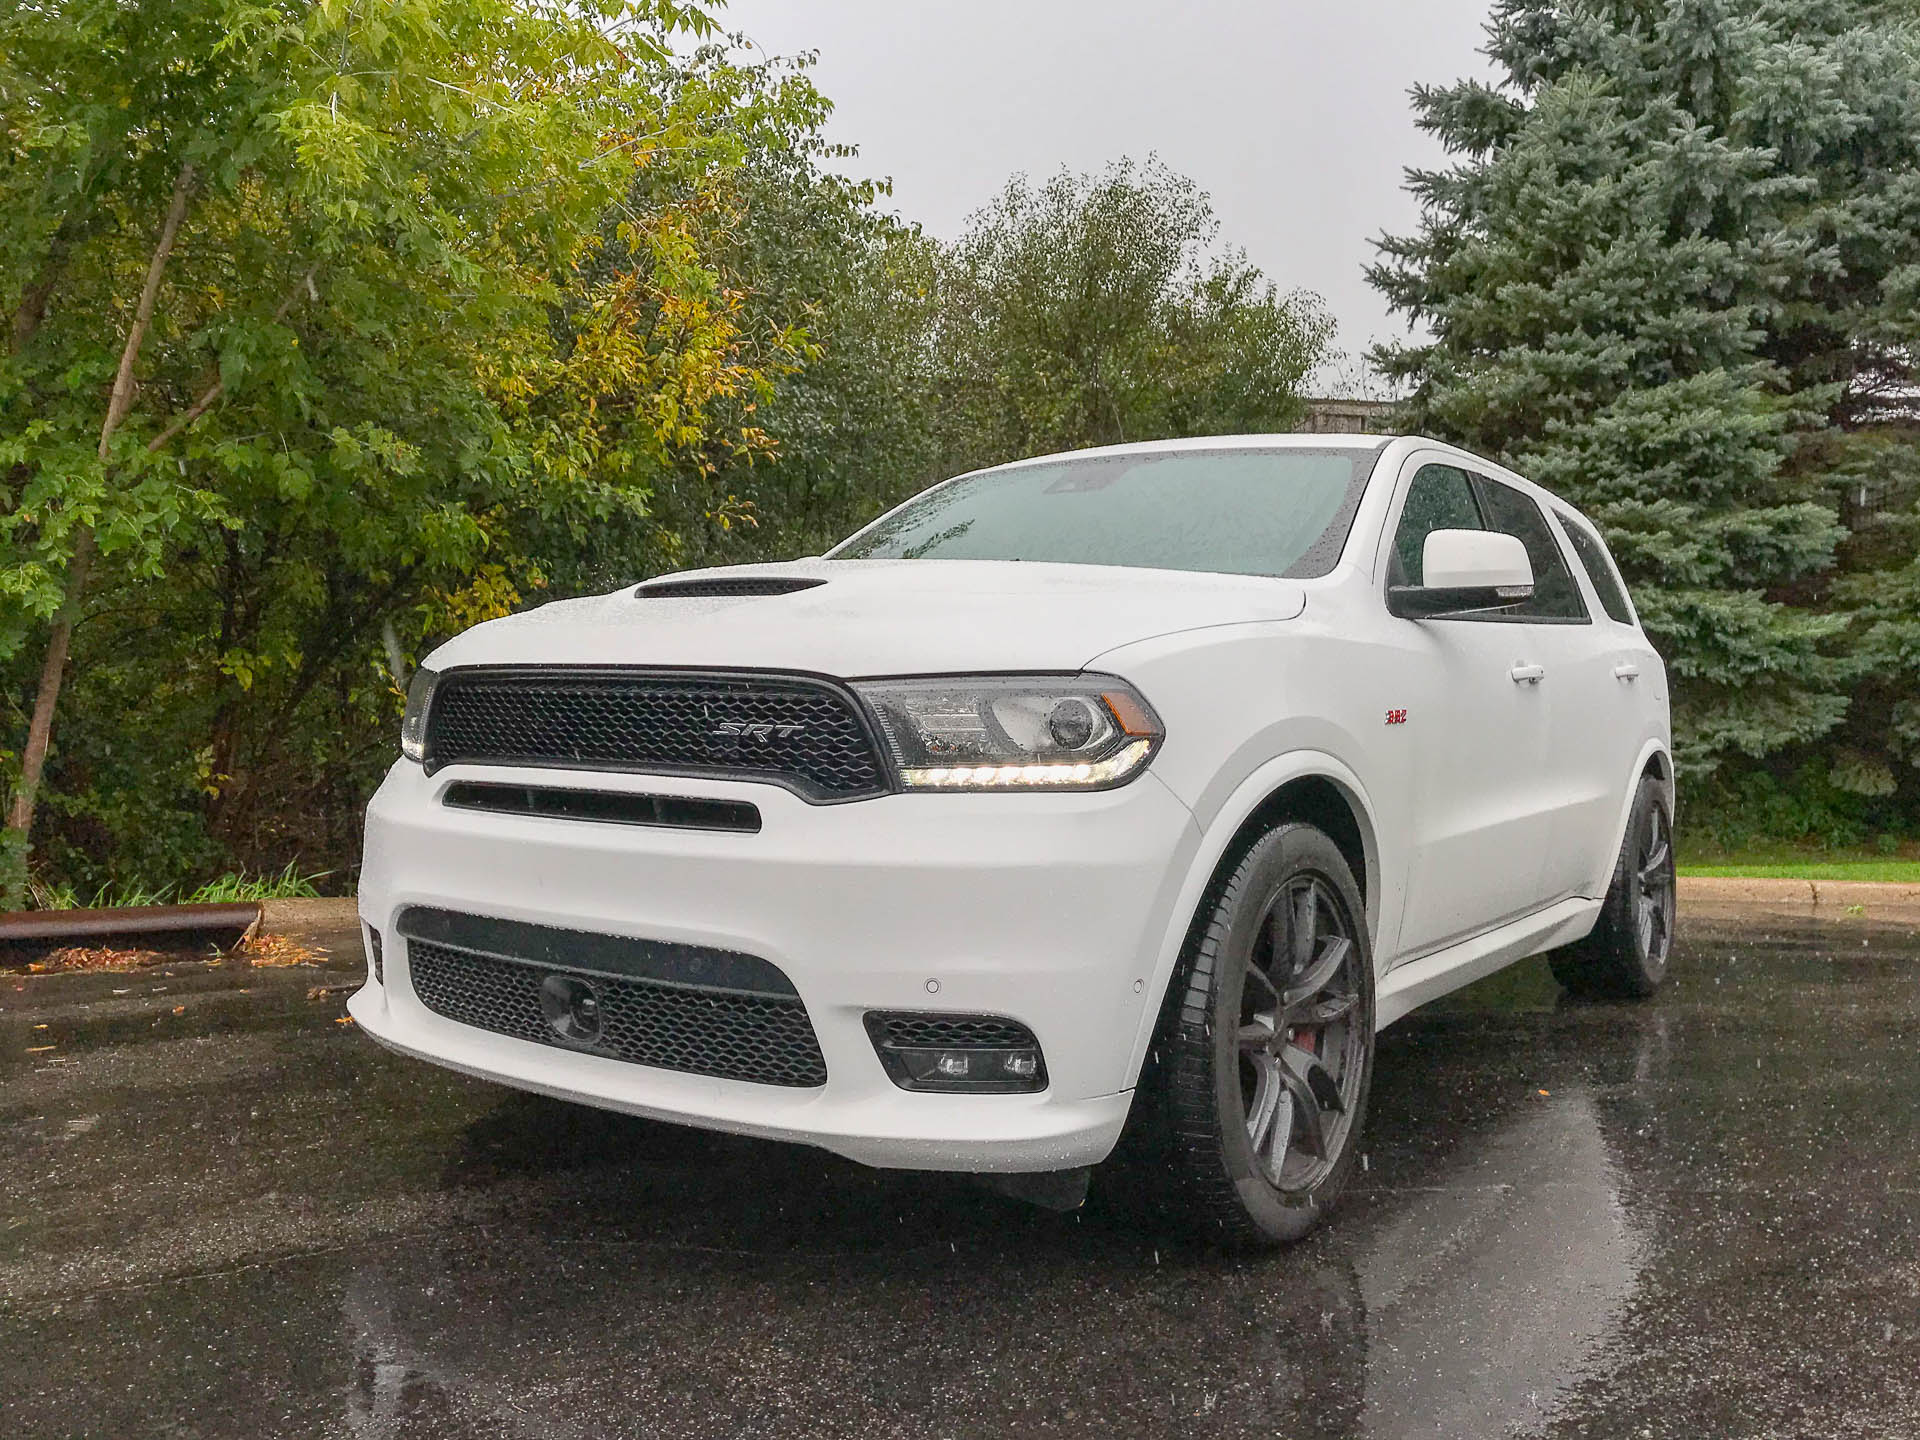 6 Things You Need To Know About The 2018 Dodge Durango Srt